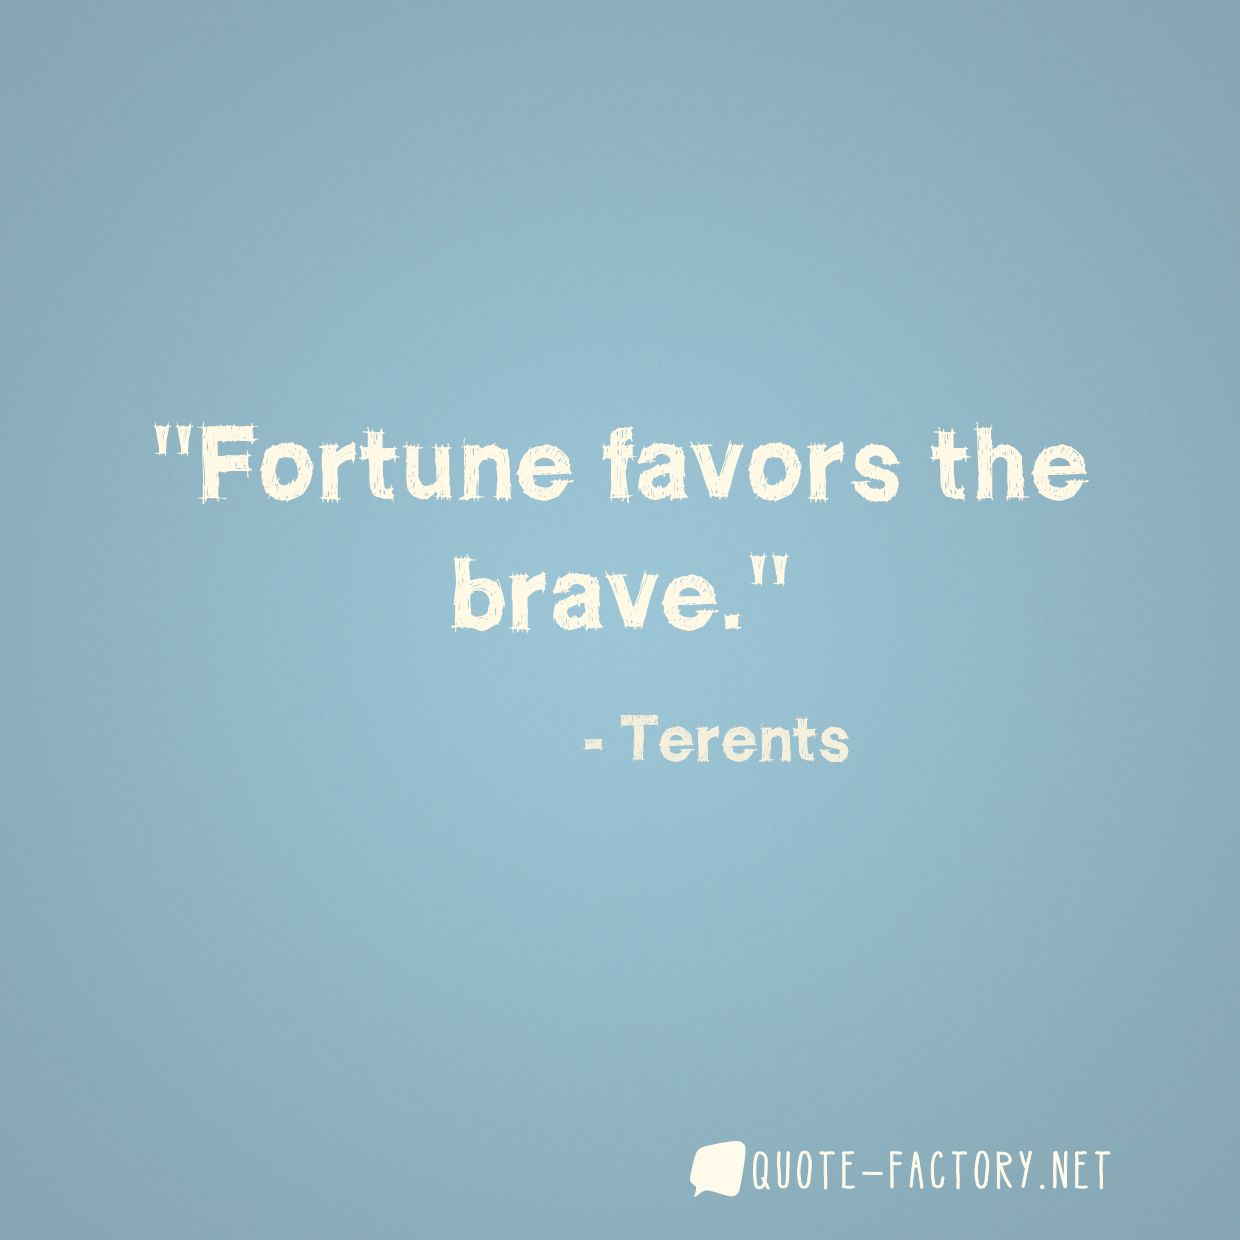 Fortune favors the brave.